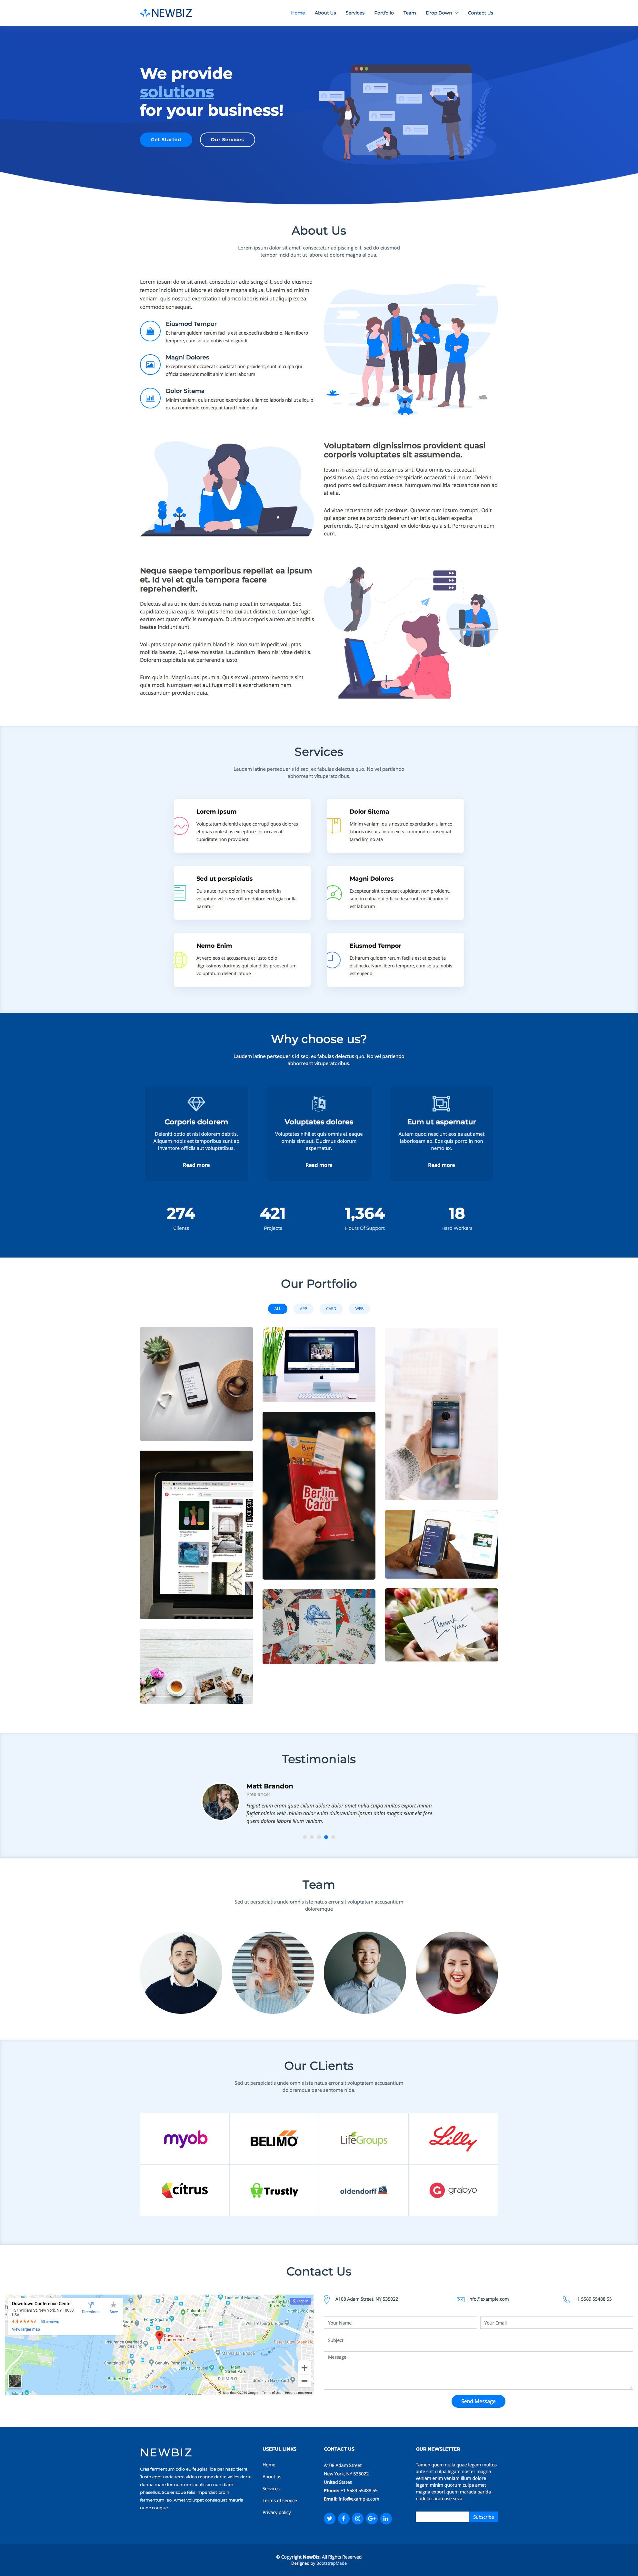 Free responsive HTML5 Bootstrap Business template